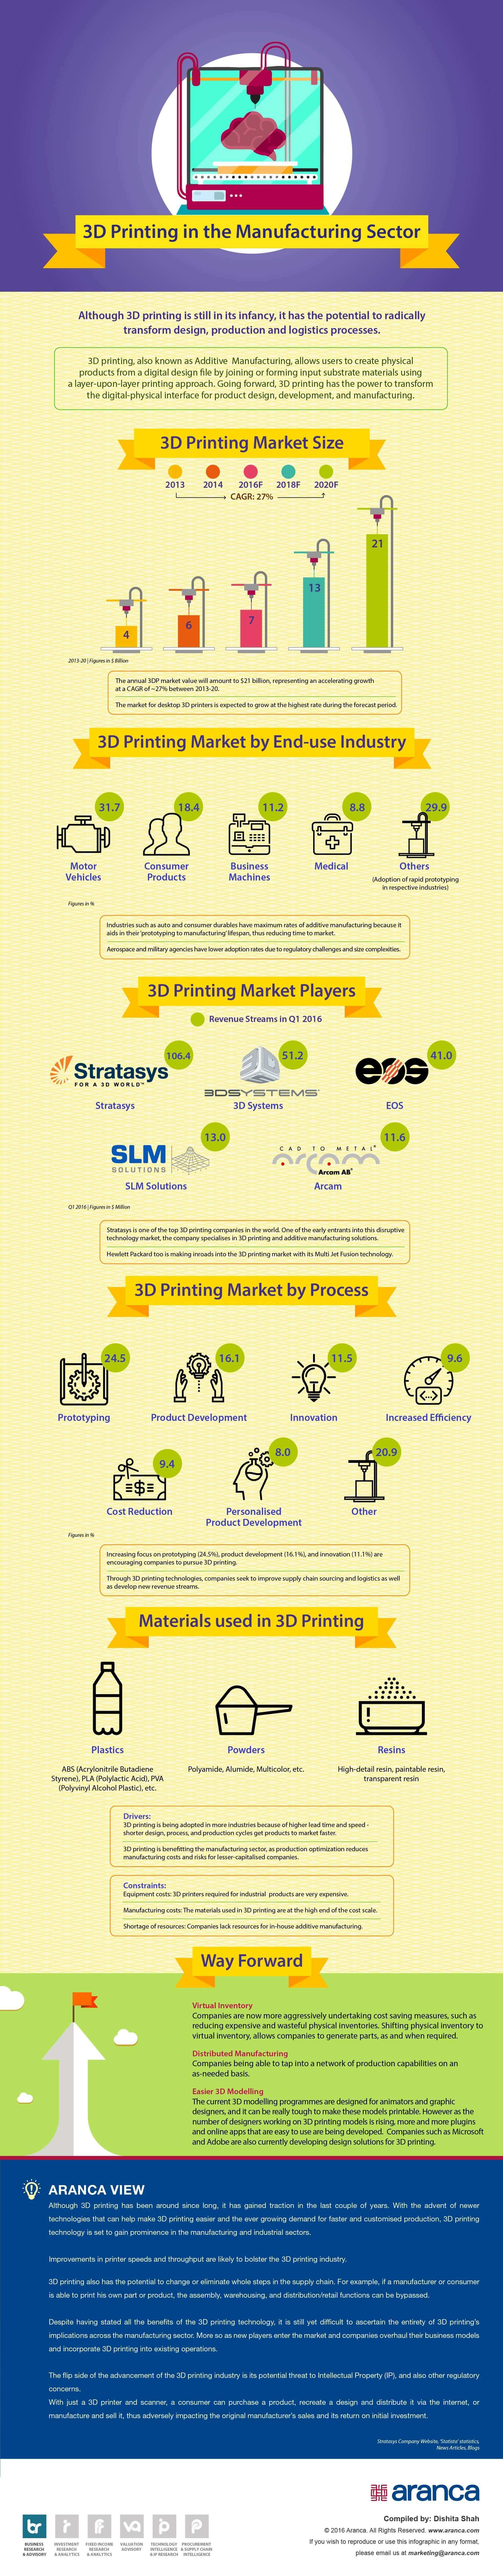 3D Printing in Manufacturing Industry Analysis